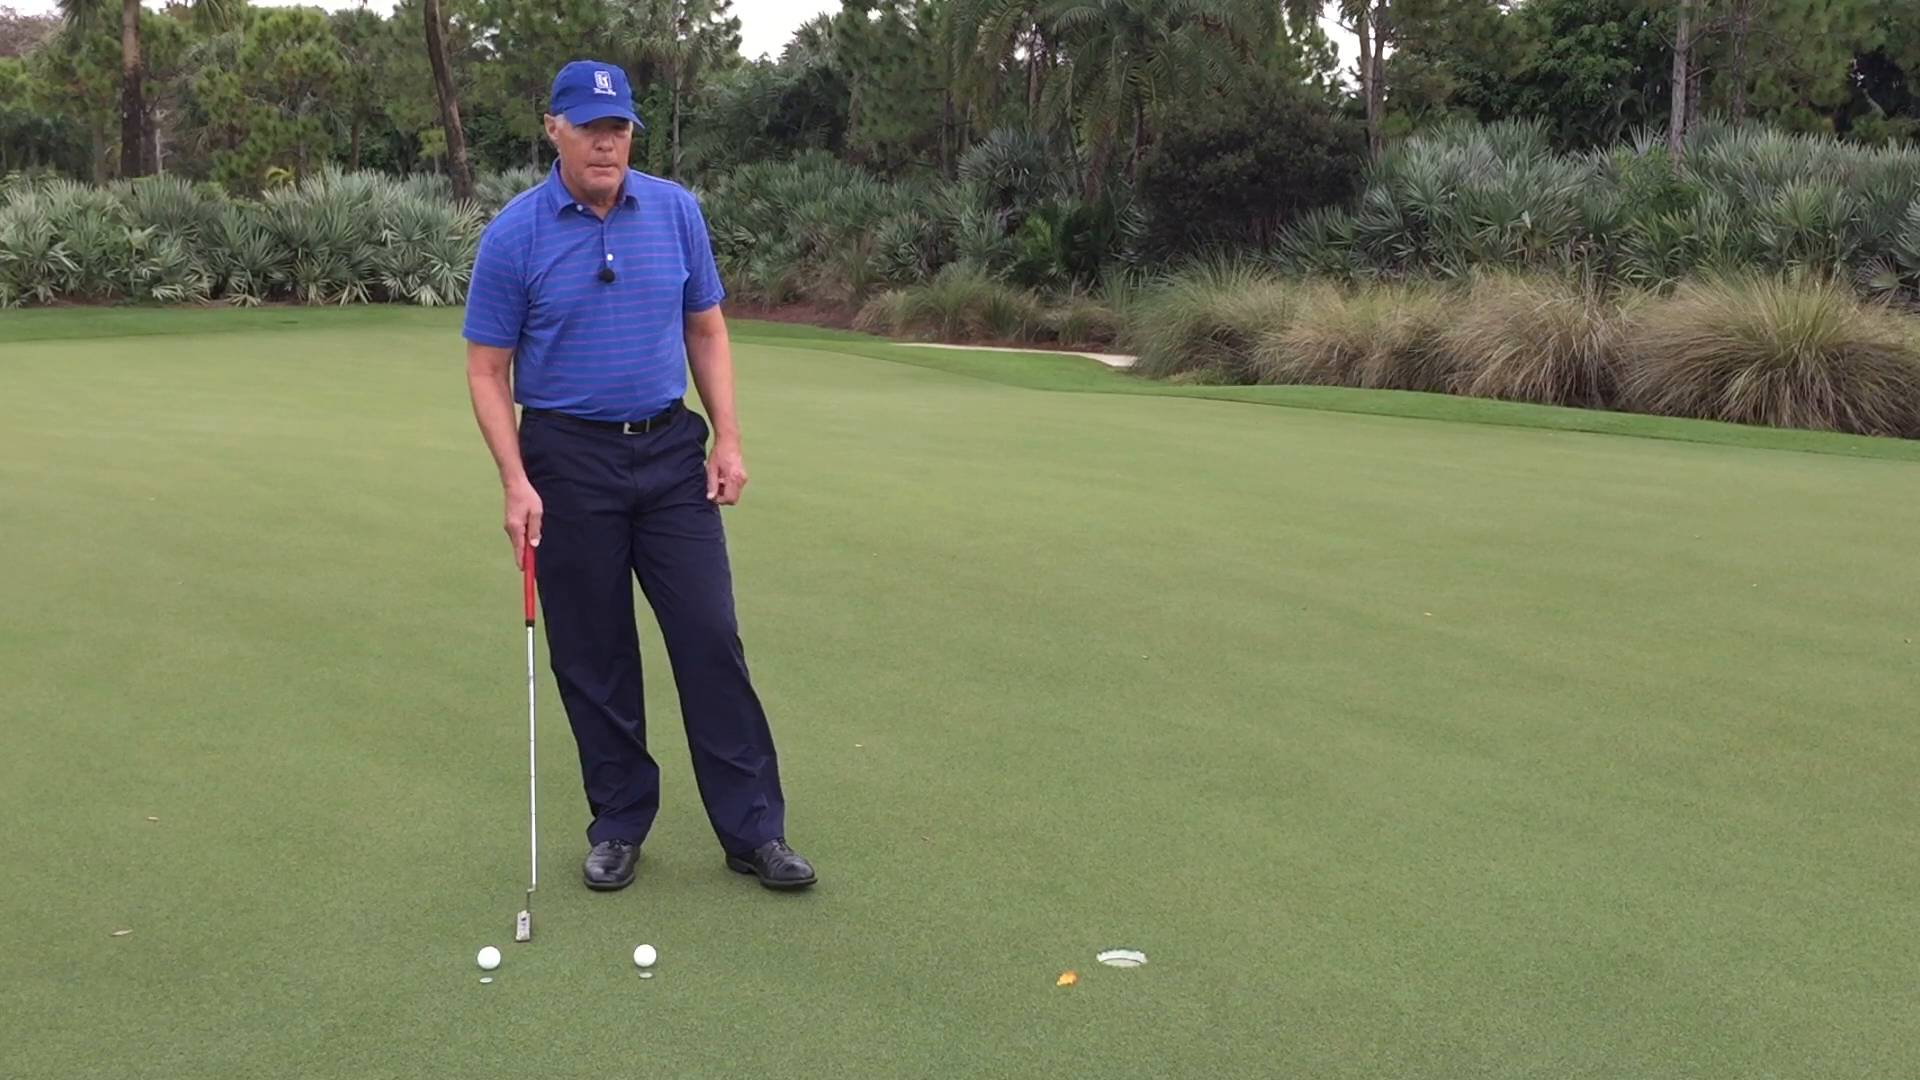 15 Favorite Chipping/Putting Drills by a PGA Tour Pro